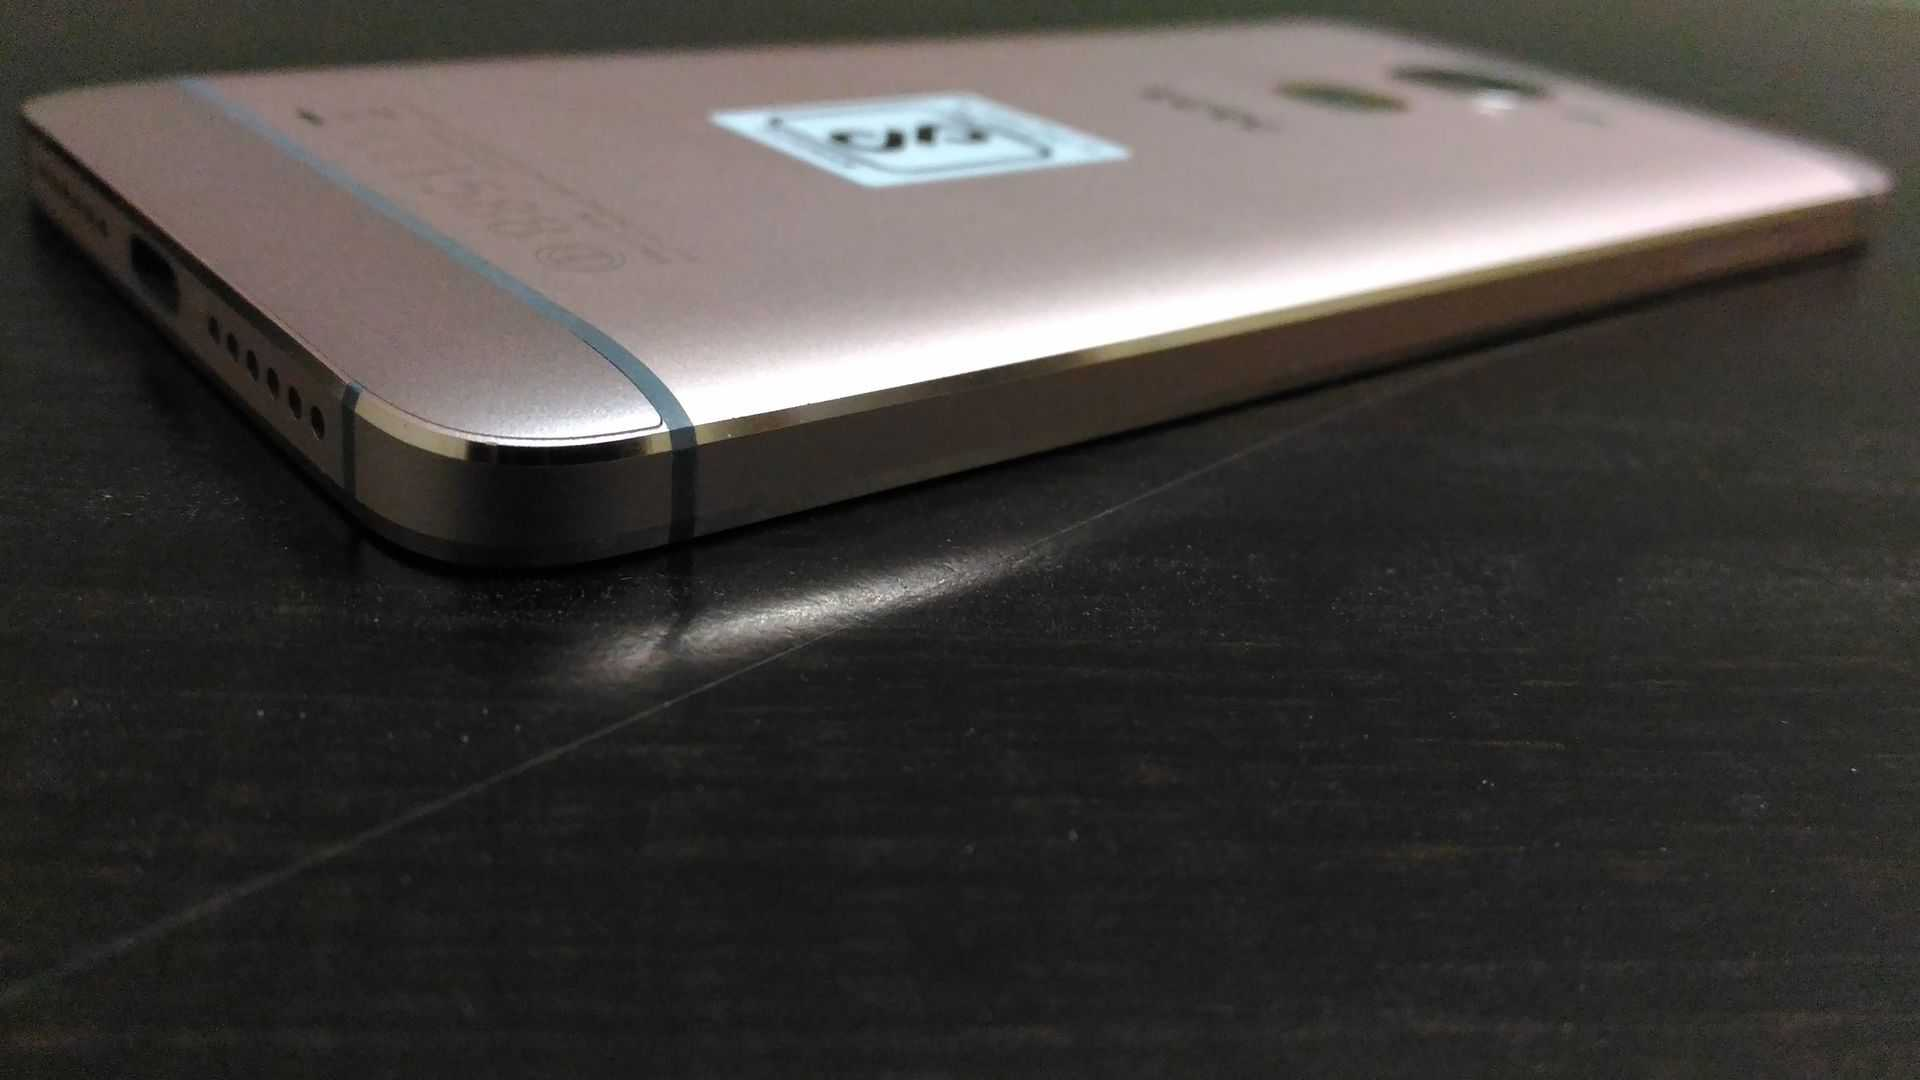 LeEco Le 2 Review - Behold the Powerful Budget-end Smartphone Under 15K - 4